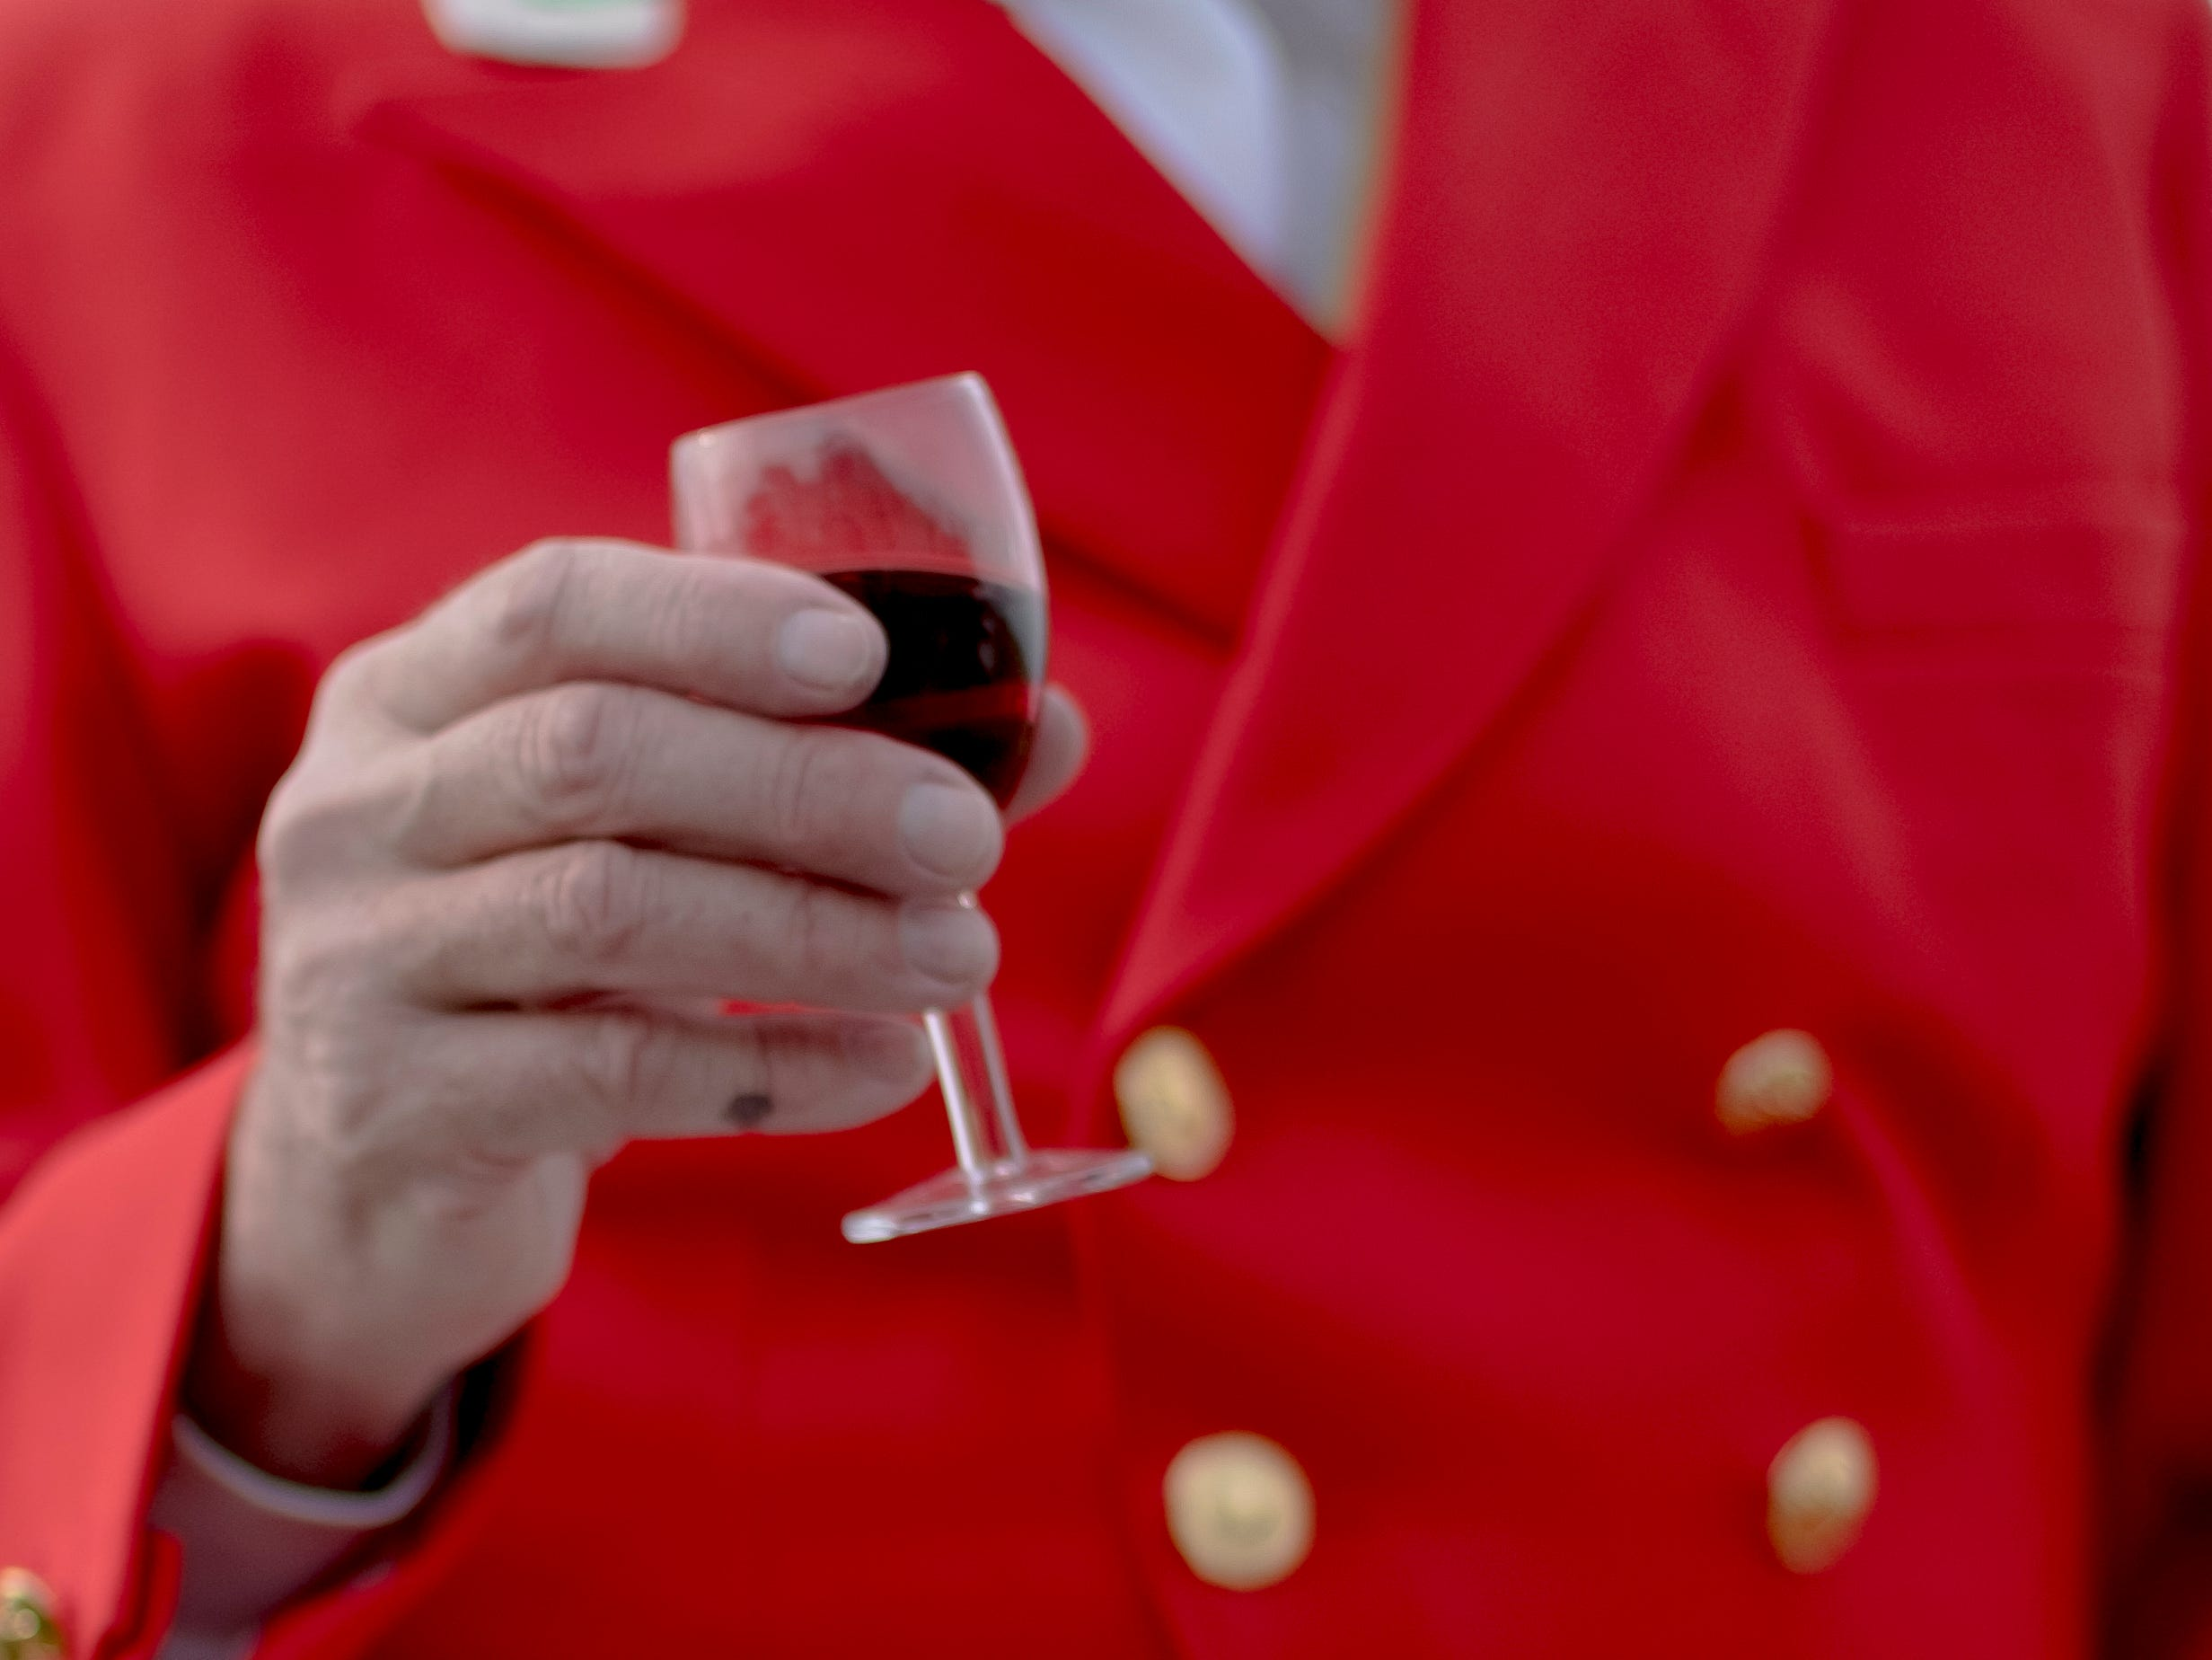 Scott Keeting, of Walland, enjoys a glass of port wine before the start of a fixture at Blackberry Ridge Farm in Greeneville, Tennessee on Saturday, March 30, 2019.